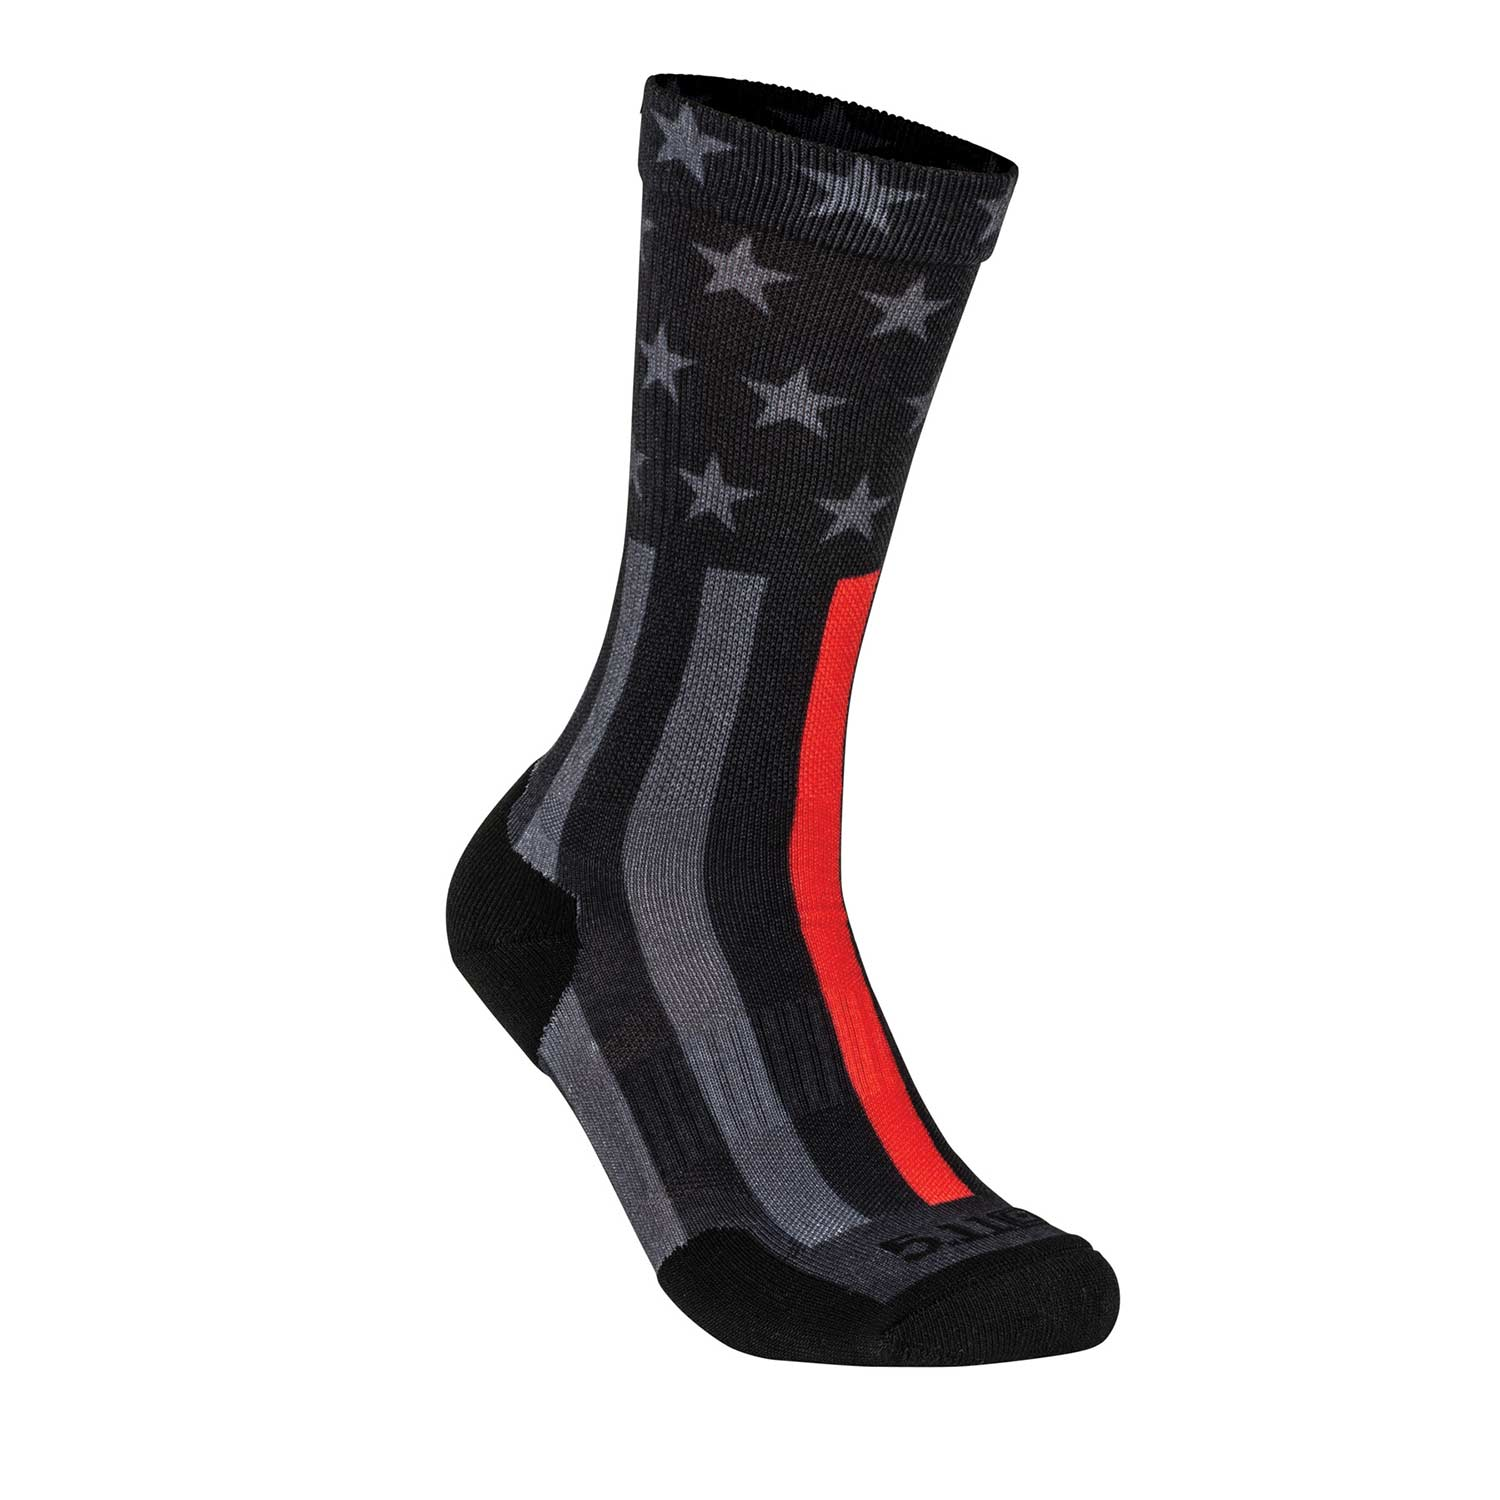 5.11 Tactical Socks and Awe Thin Red Line Crew Socks